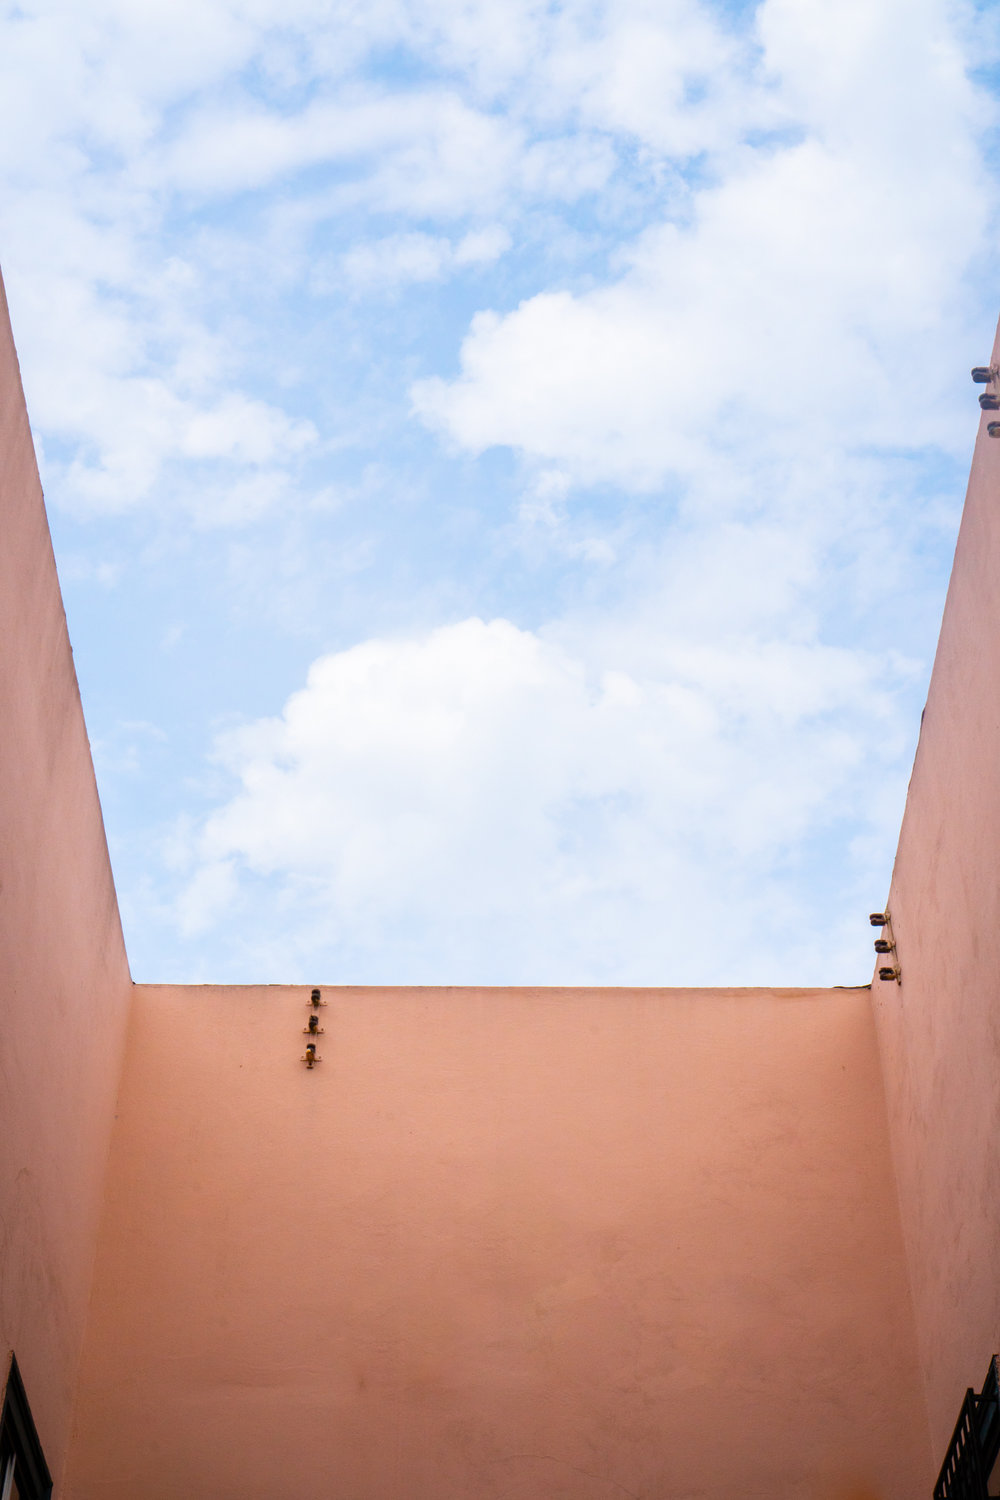 Minimal Architecture with Blue Skies by Sarah Natsumi Moore